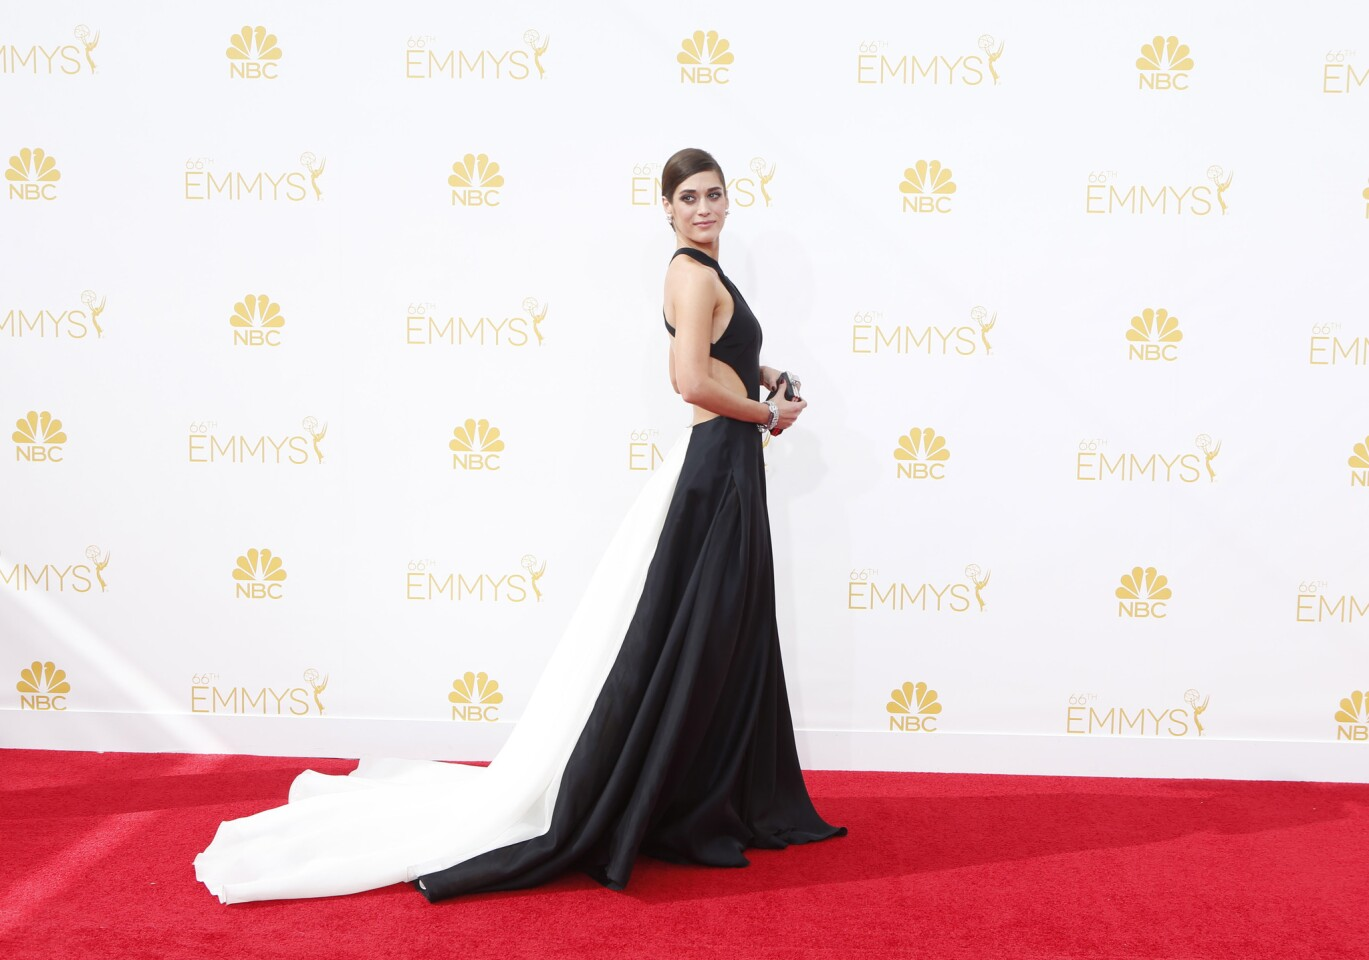 Lizzy Caplan arriving at the 2014 Emmy Awards at L.A. Live.